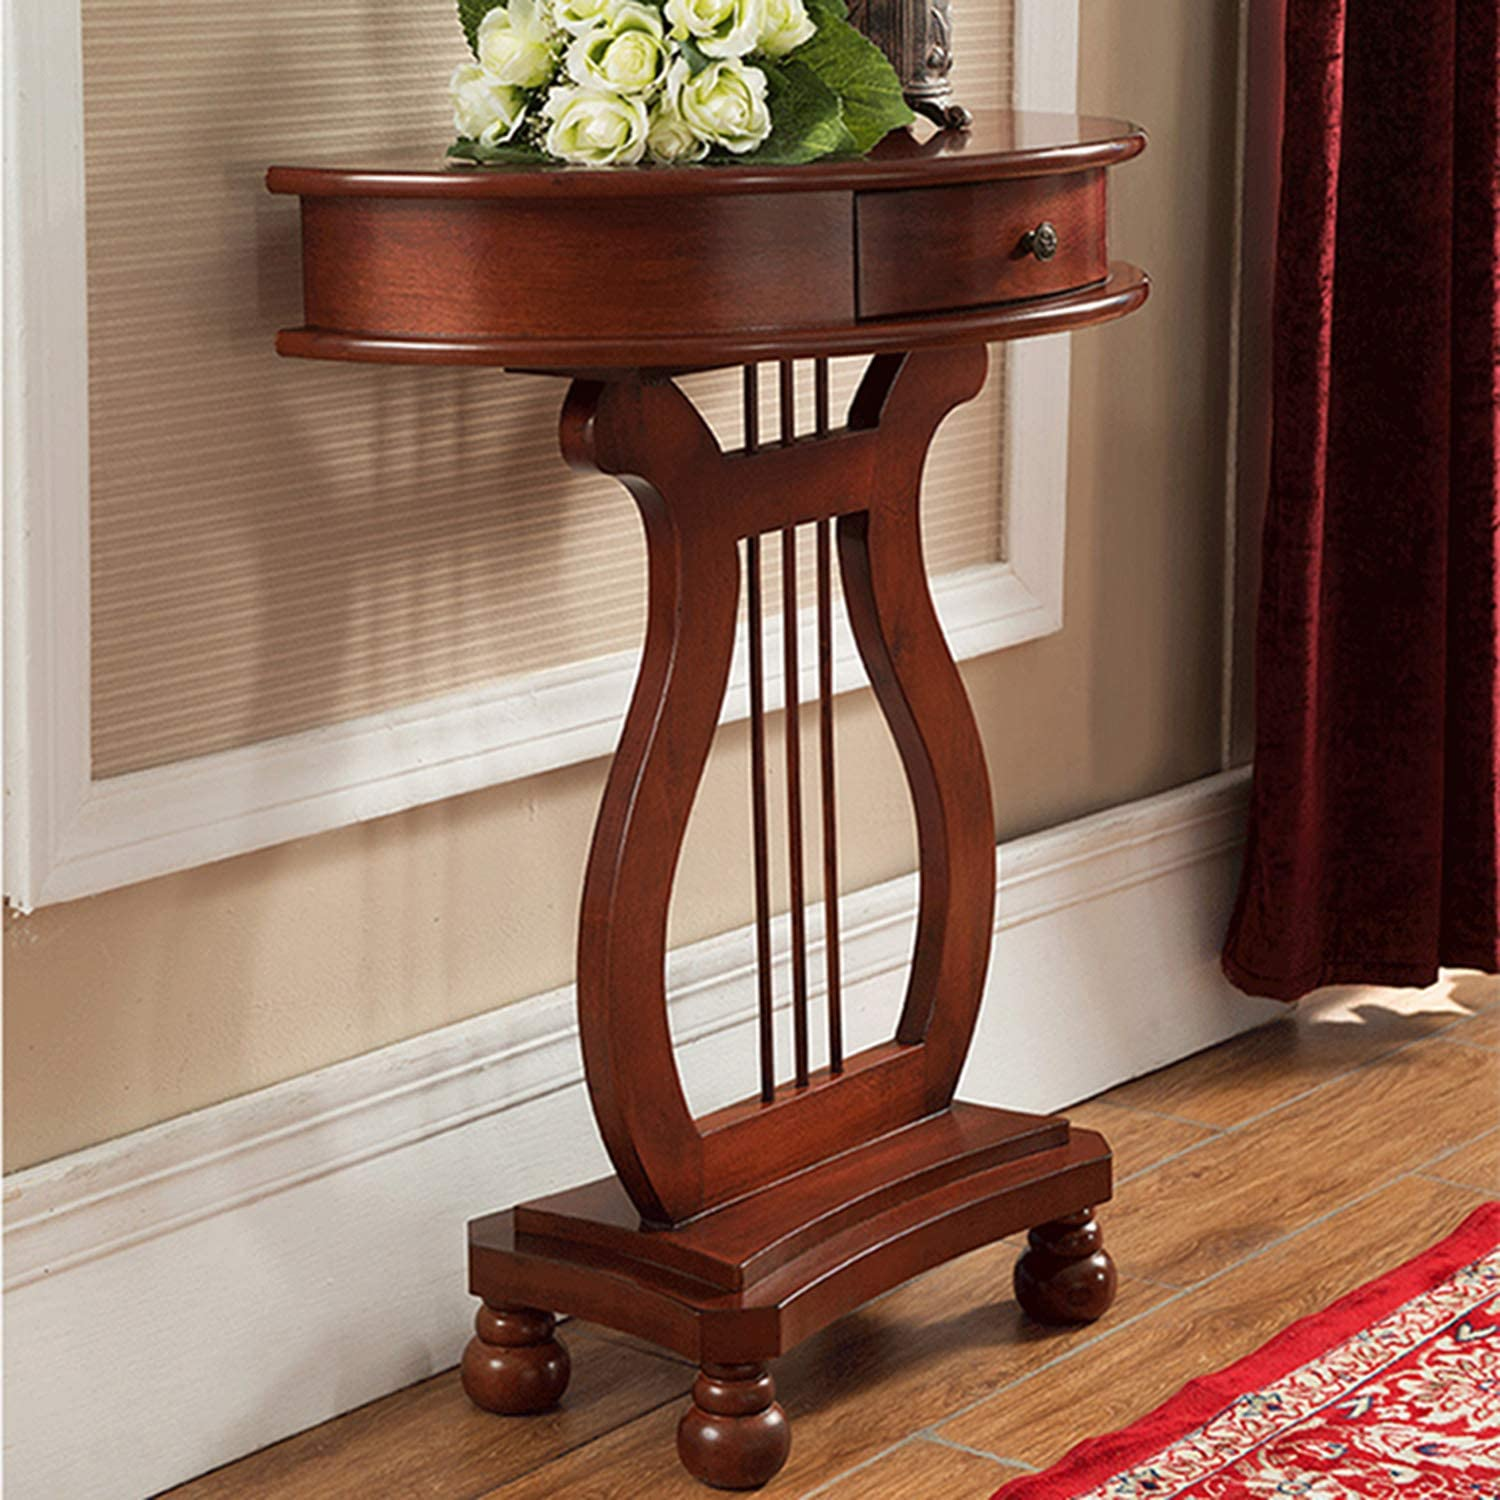 Entry Table with Curved Front and Inlay Shelf,Semi-Circle,Sofa Table,Shelves,Cabinet,Home Furnishing Finish End/Side Table